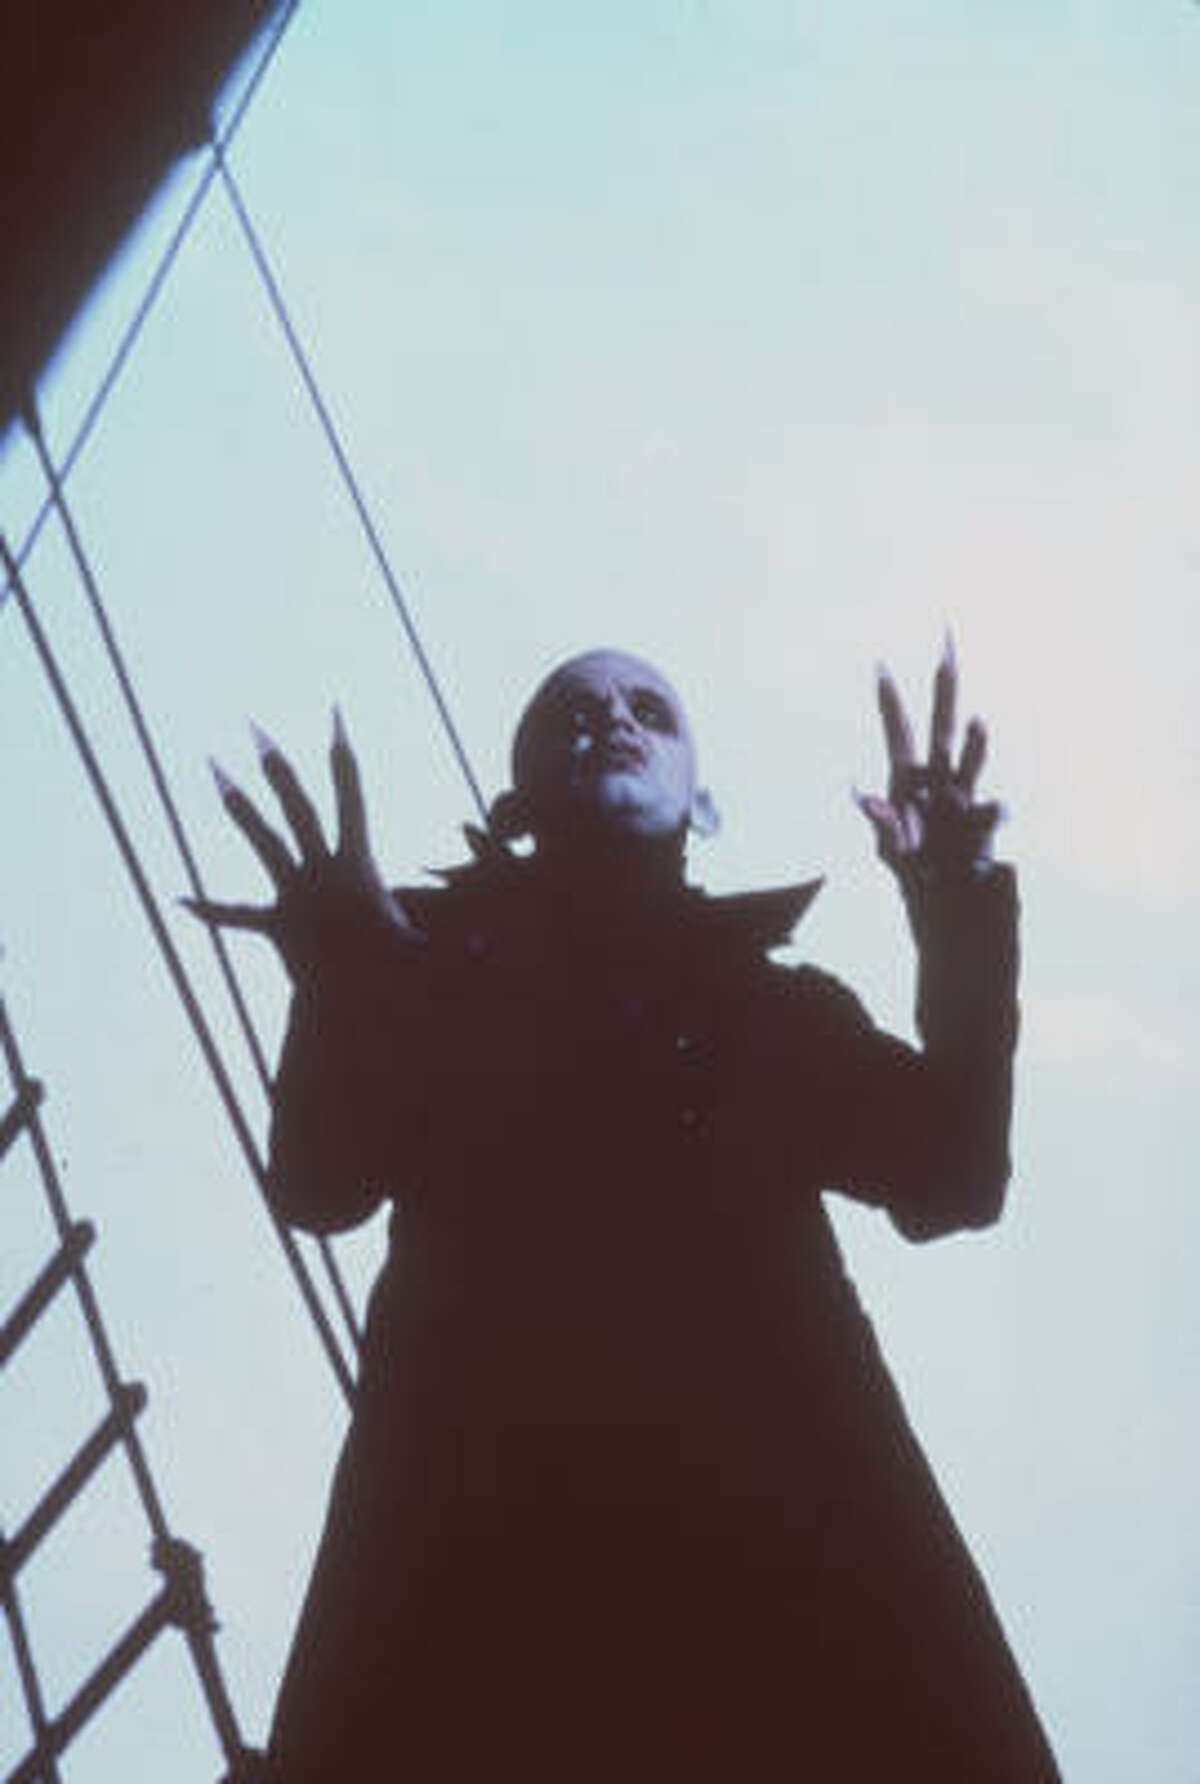 Klaus Kinski played Count Dracula with a nod to silent film star Max Schreck's Count Orlok in Nosferatu: The Vampyre (1979).